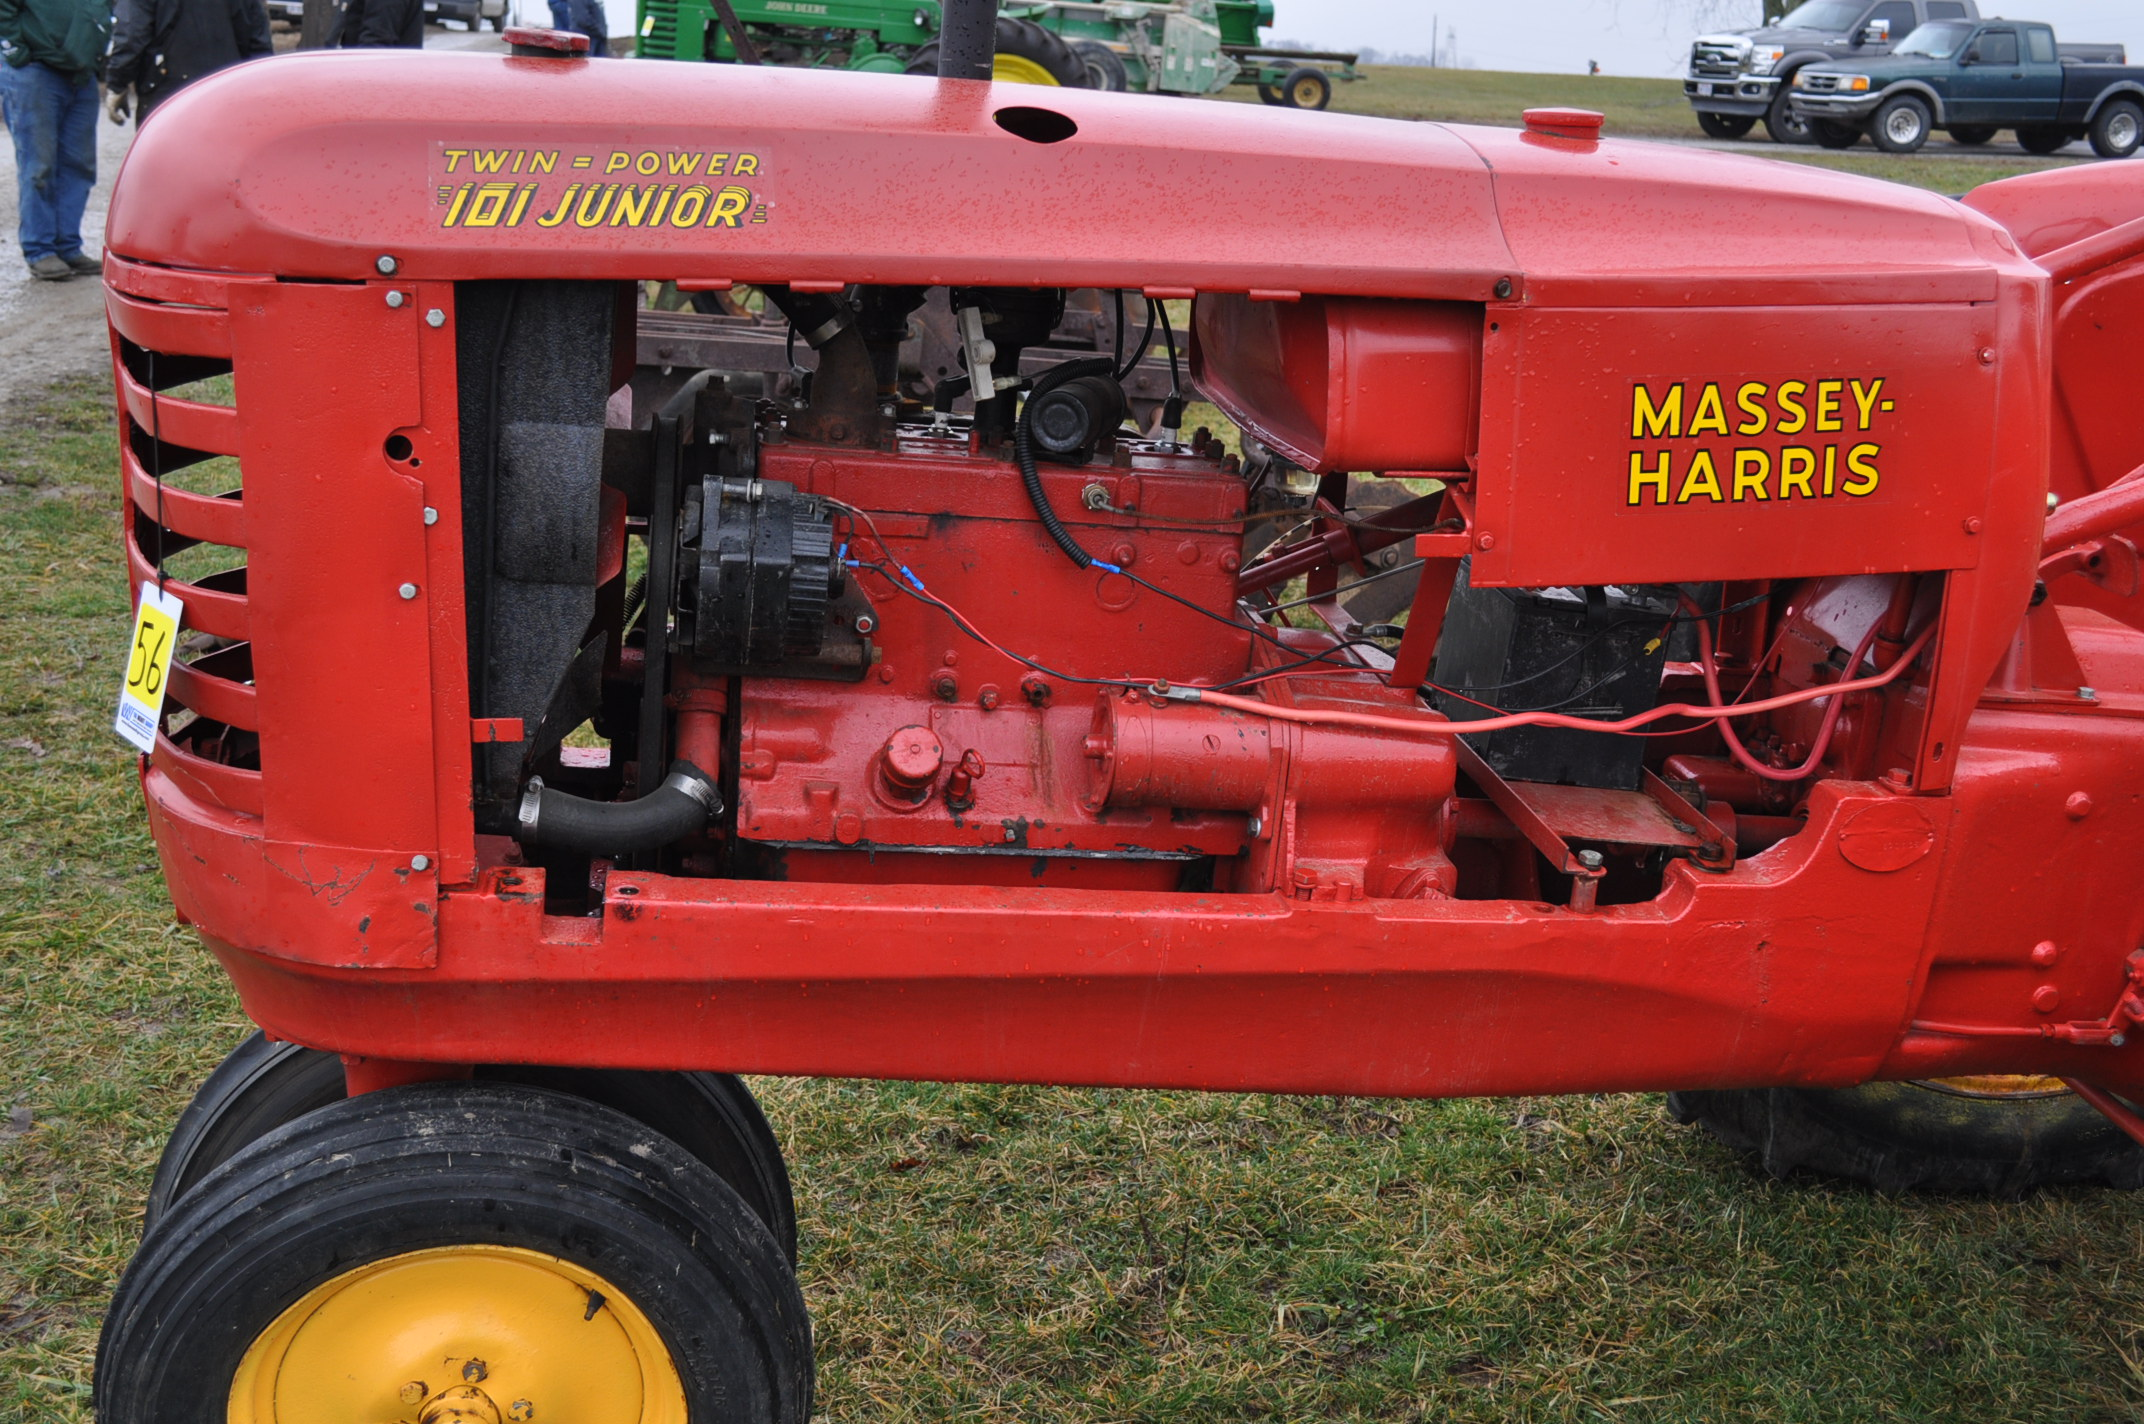 Massey Harris 101 Junior tractor, 12-38 tires, narrow front, 540 pto, SN 501605 - Image 9 of 12